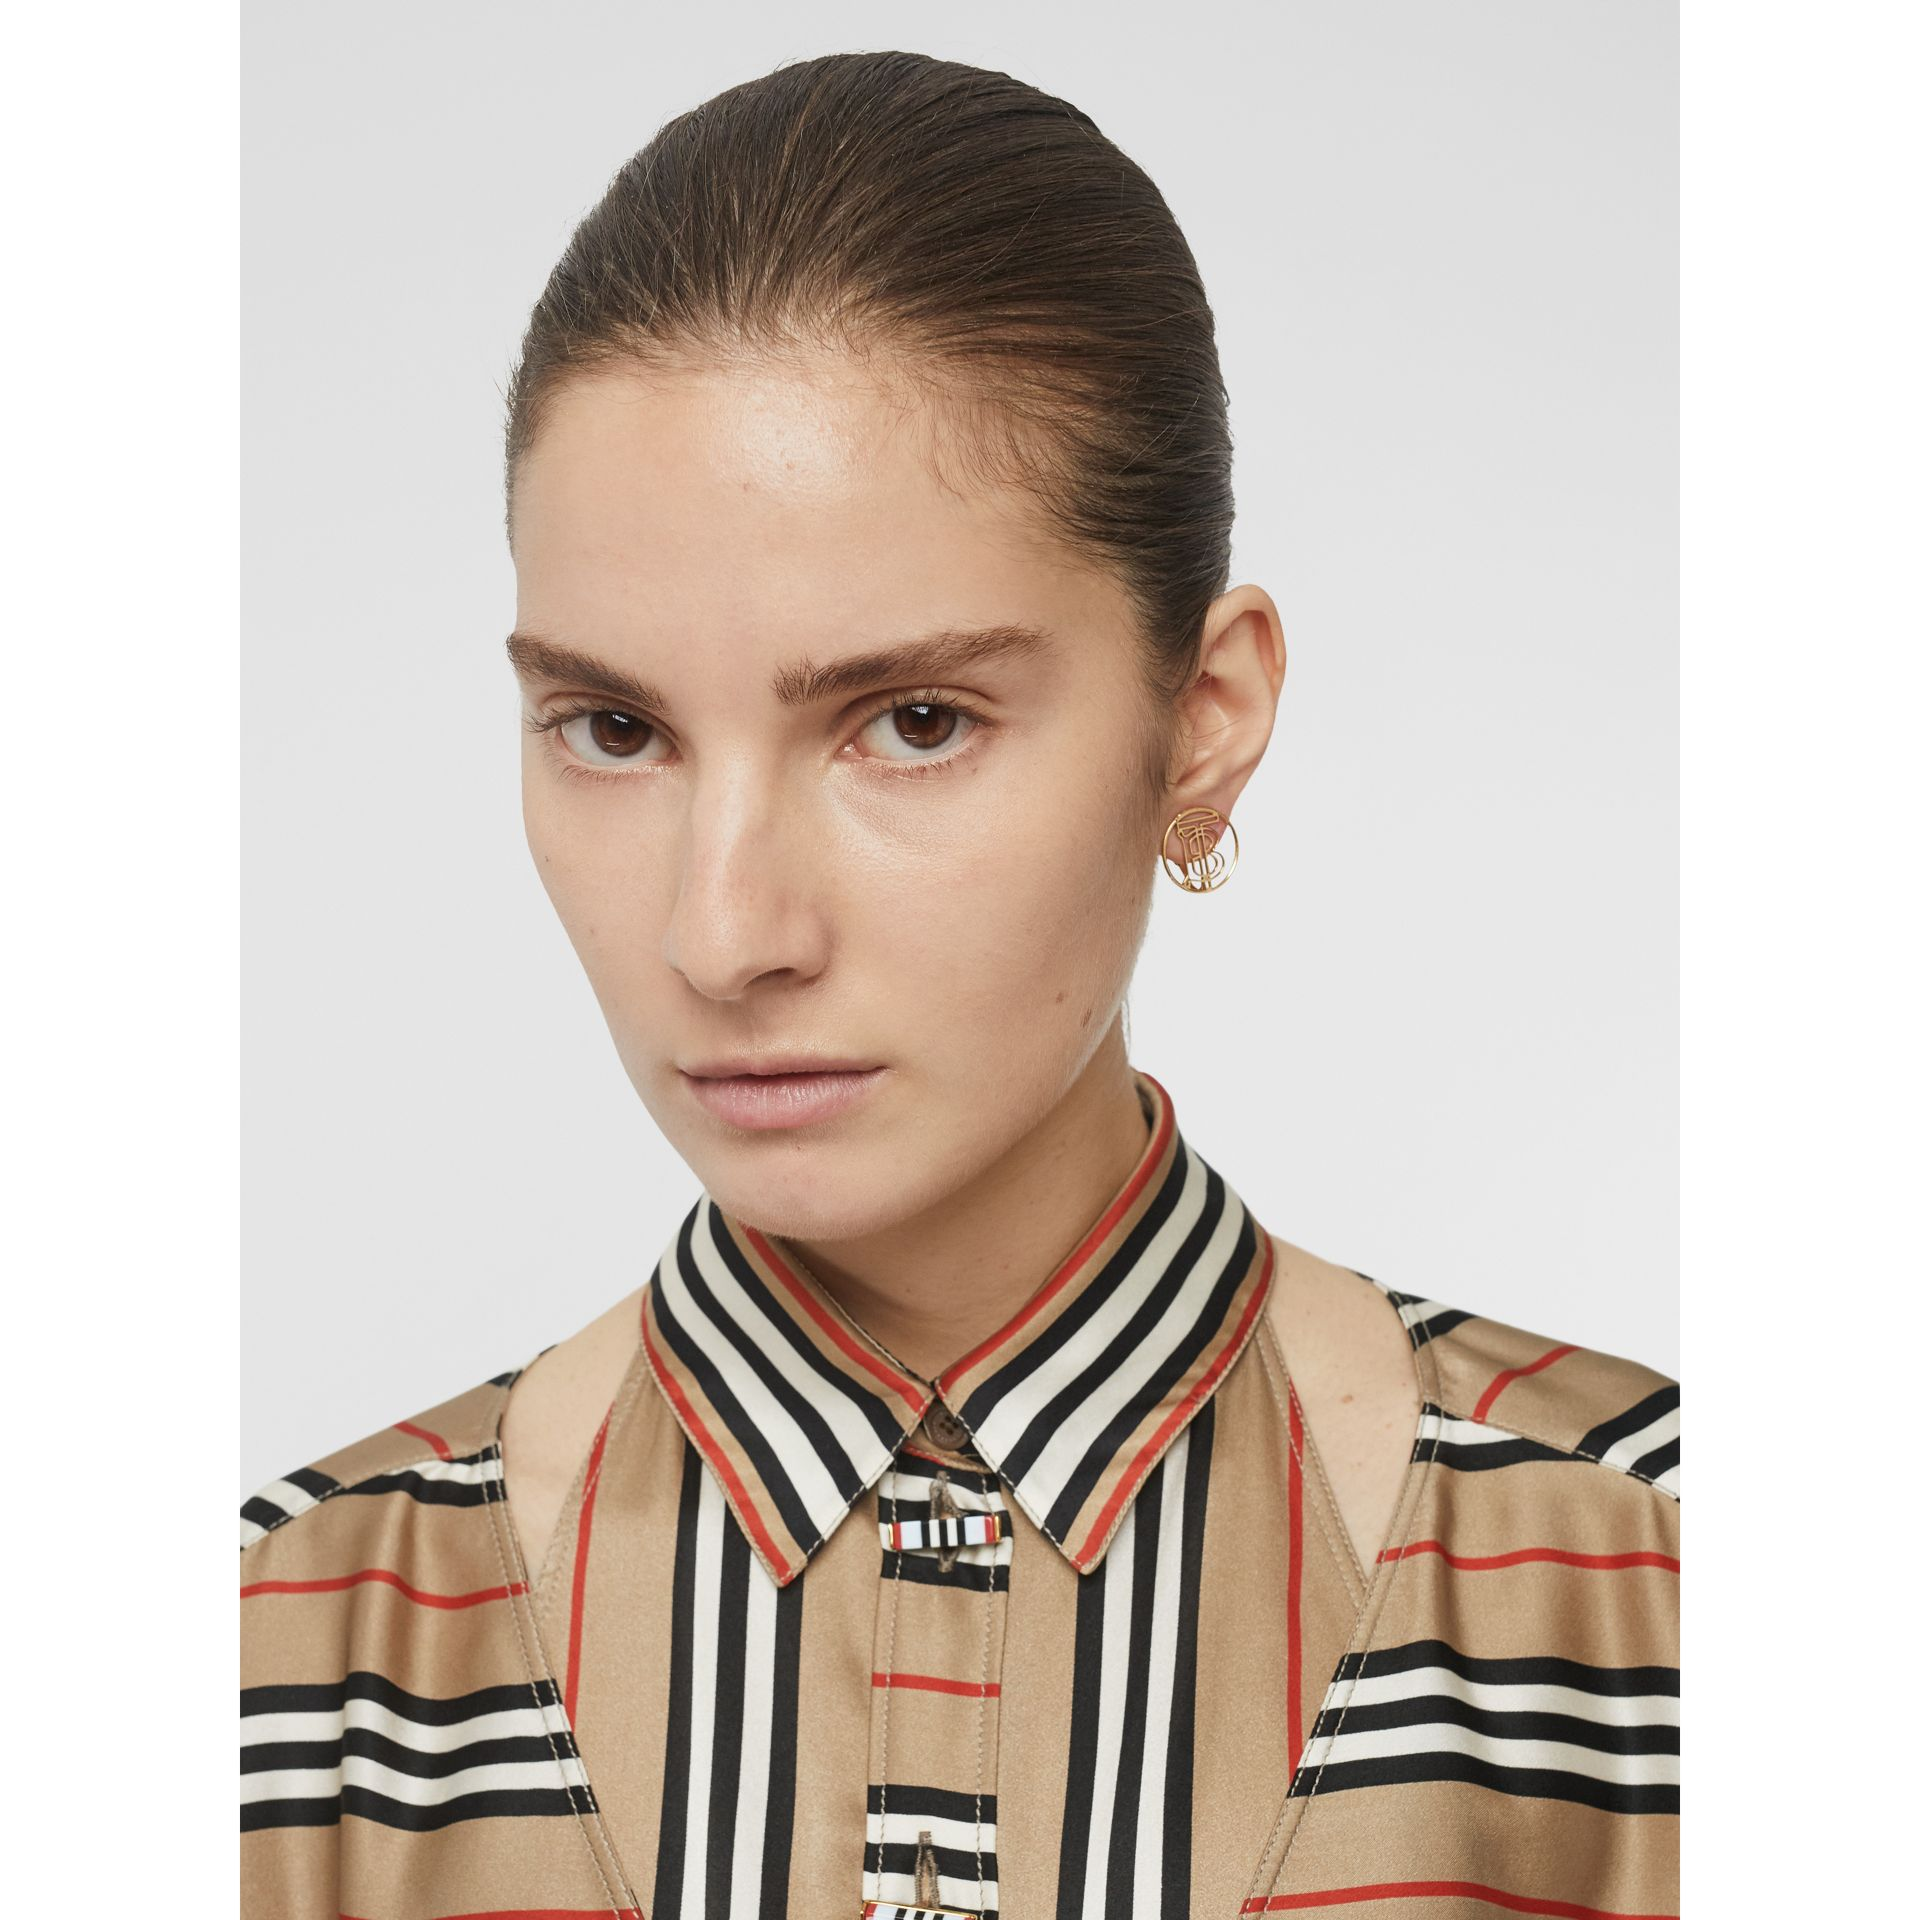 Cut-out Detail Icon Stripe Silk Oversized Shirt in Archive Beige - Women | Burberry Hong Kong - gallery image 5